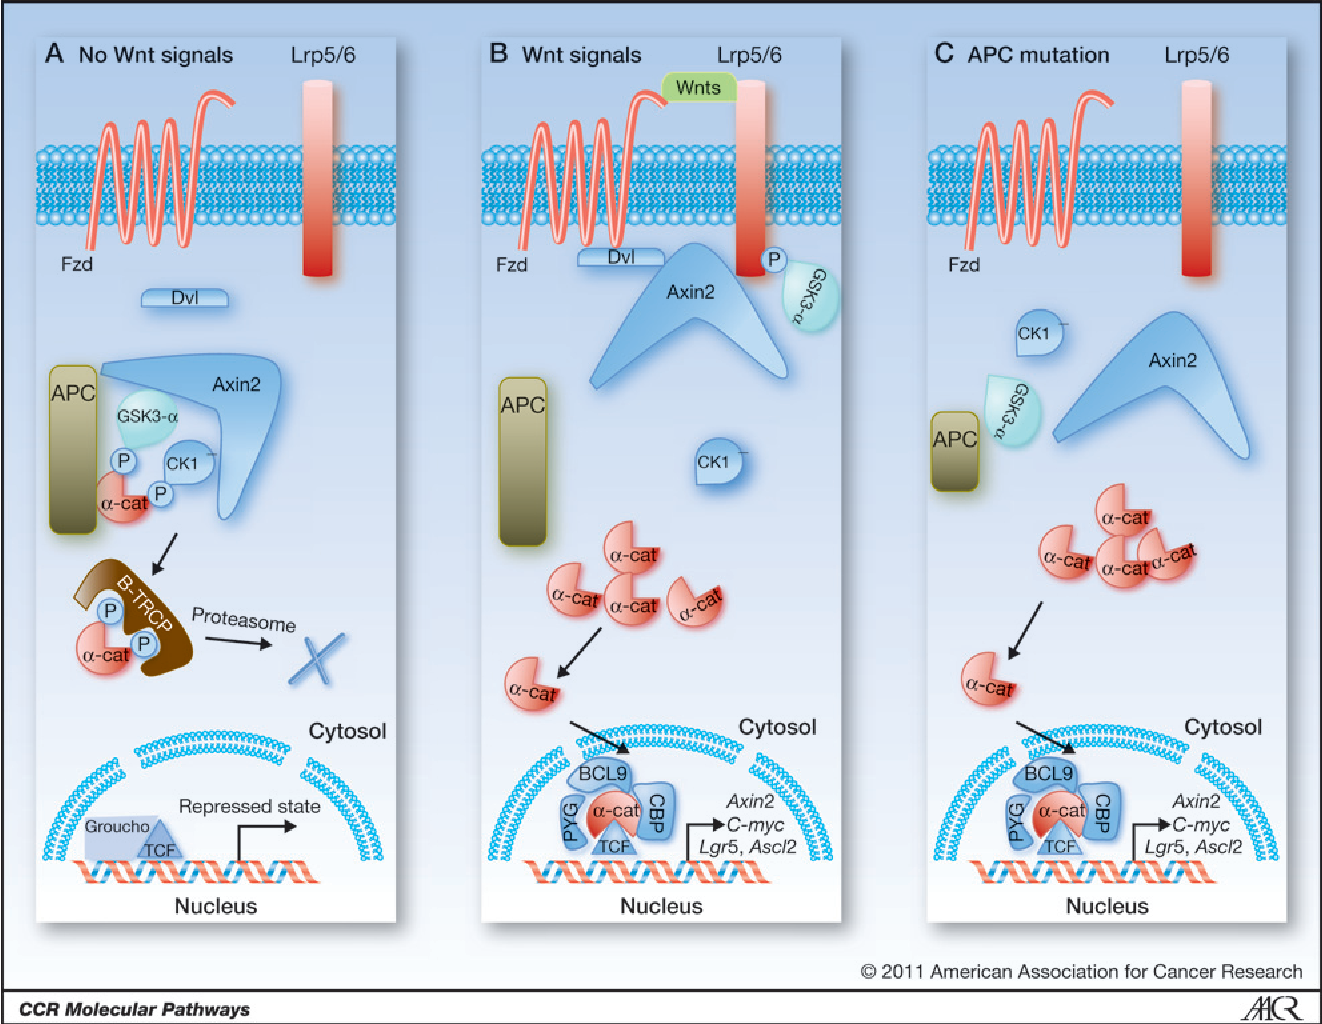 Figure 1 From Molecular Pathways Targeting Wnt Signaling In Colon Cancer Stem Cells Semantic Scholar